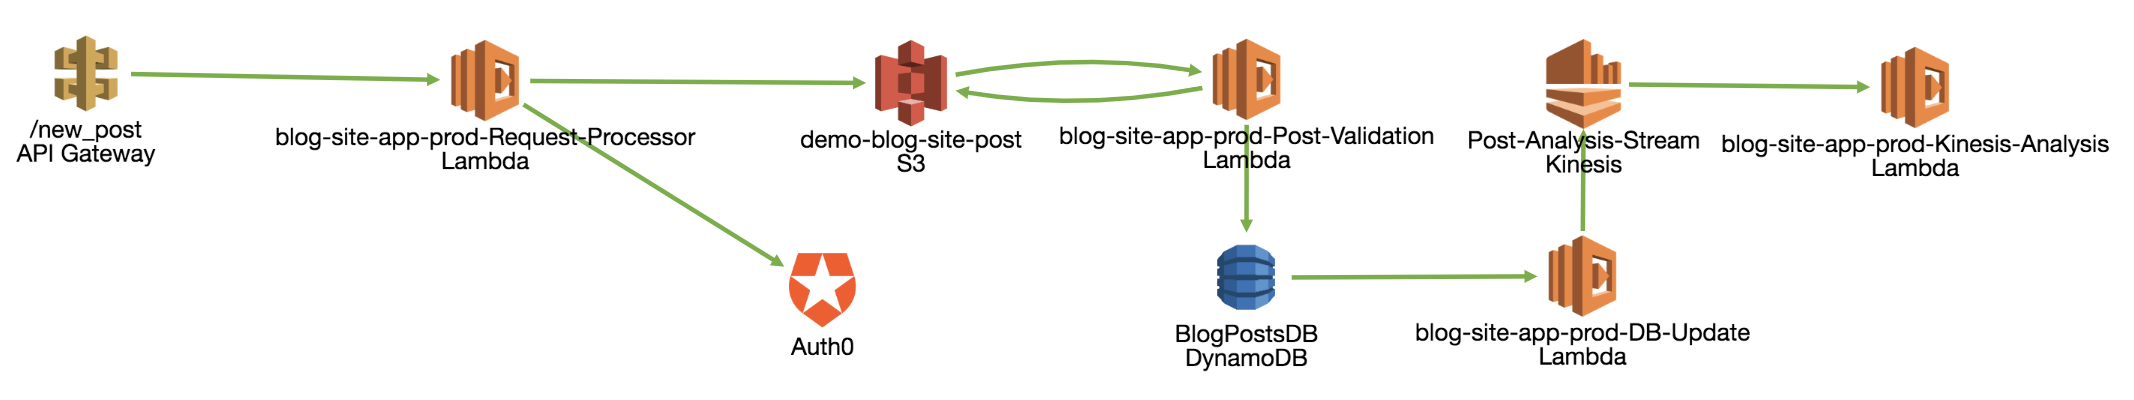 Serverless system are distributed and event-driven